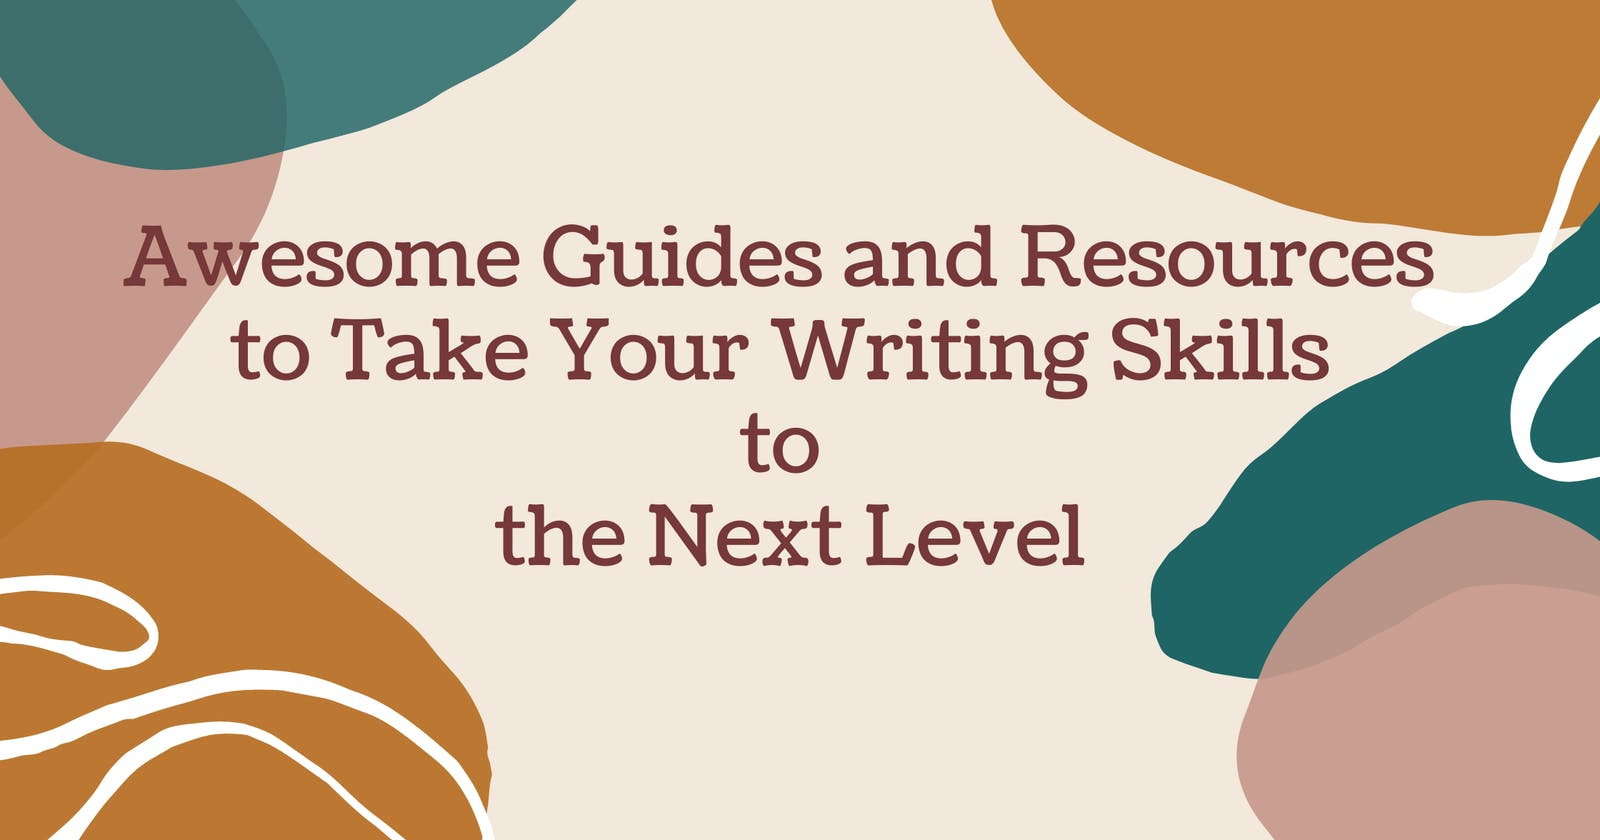 Awesome Guides and Resources to Take Your Writing Skills to the Next Level